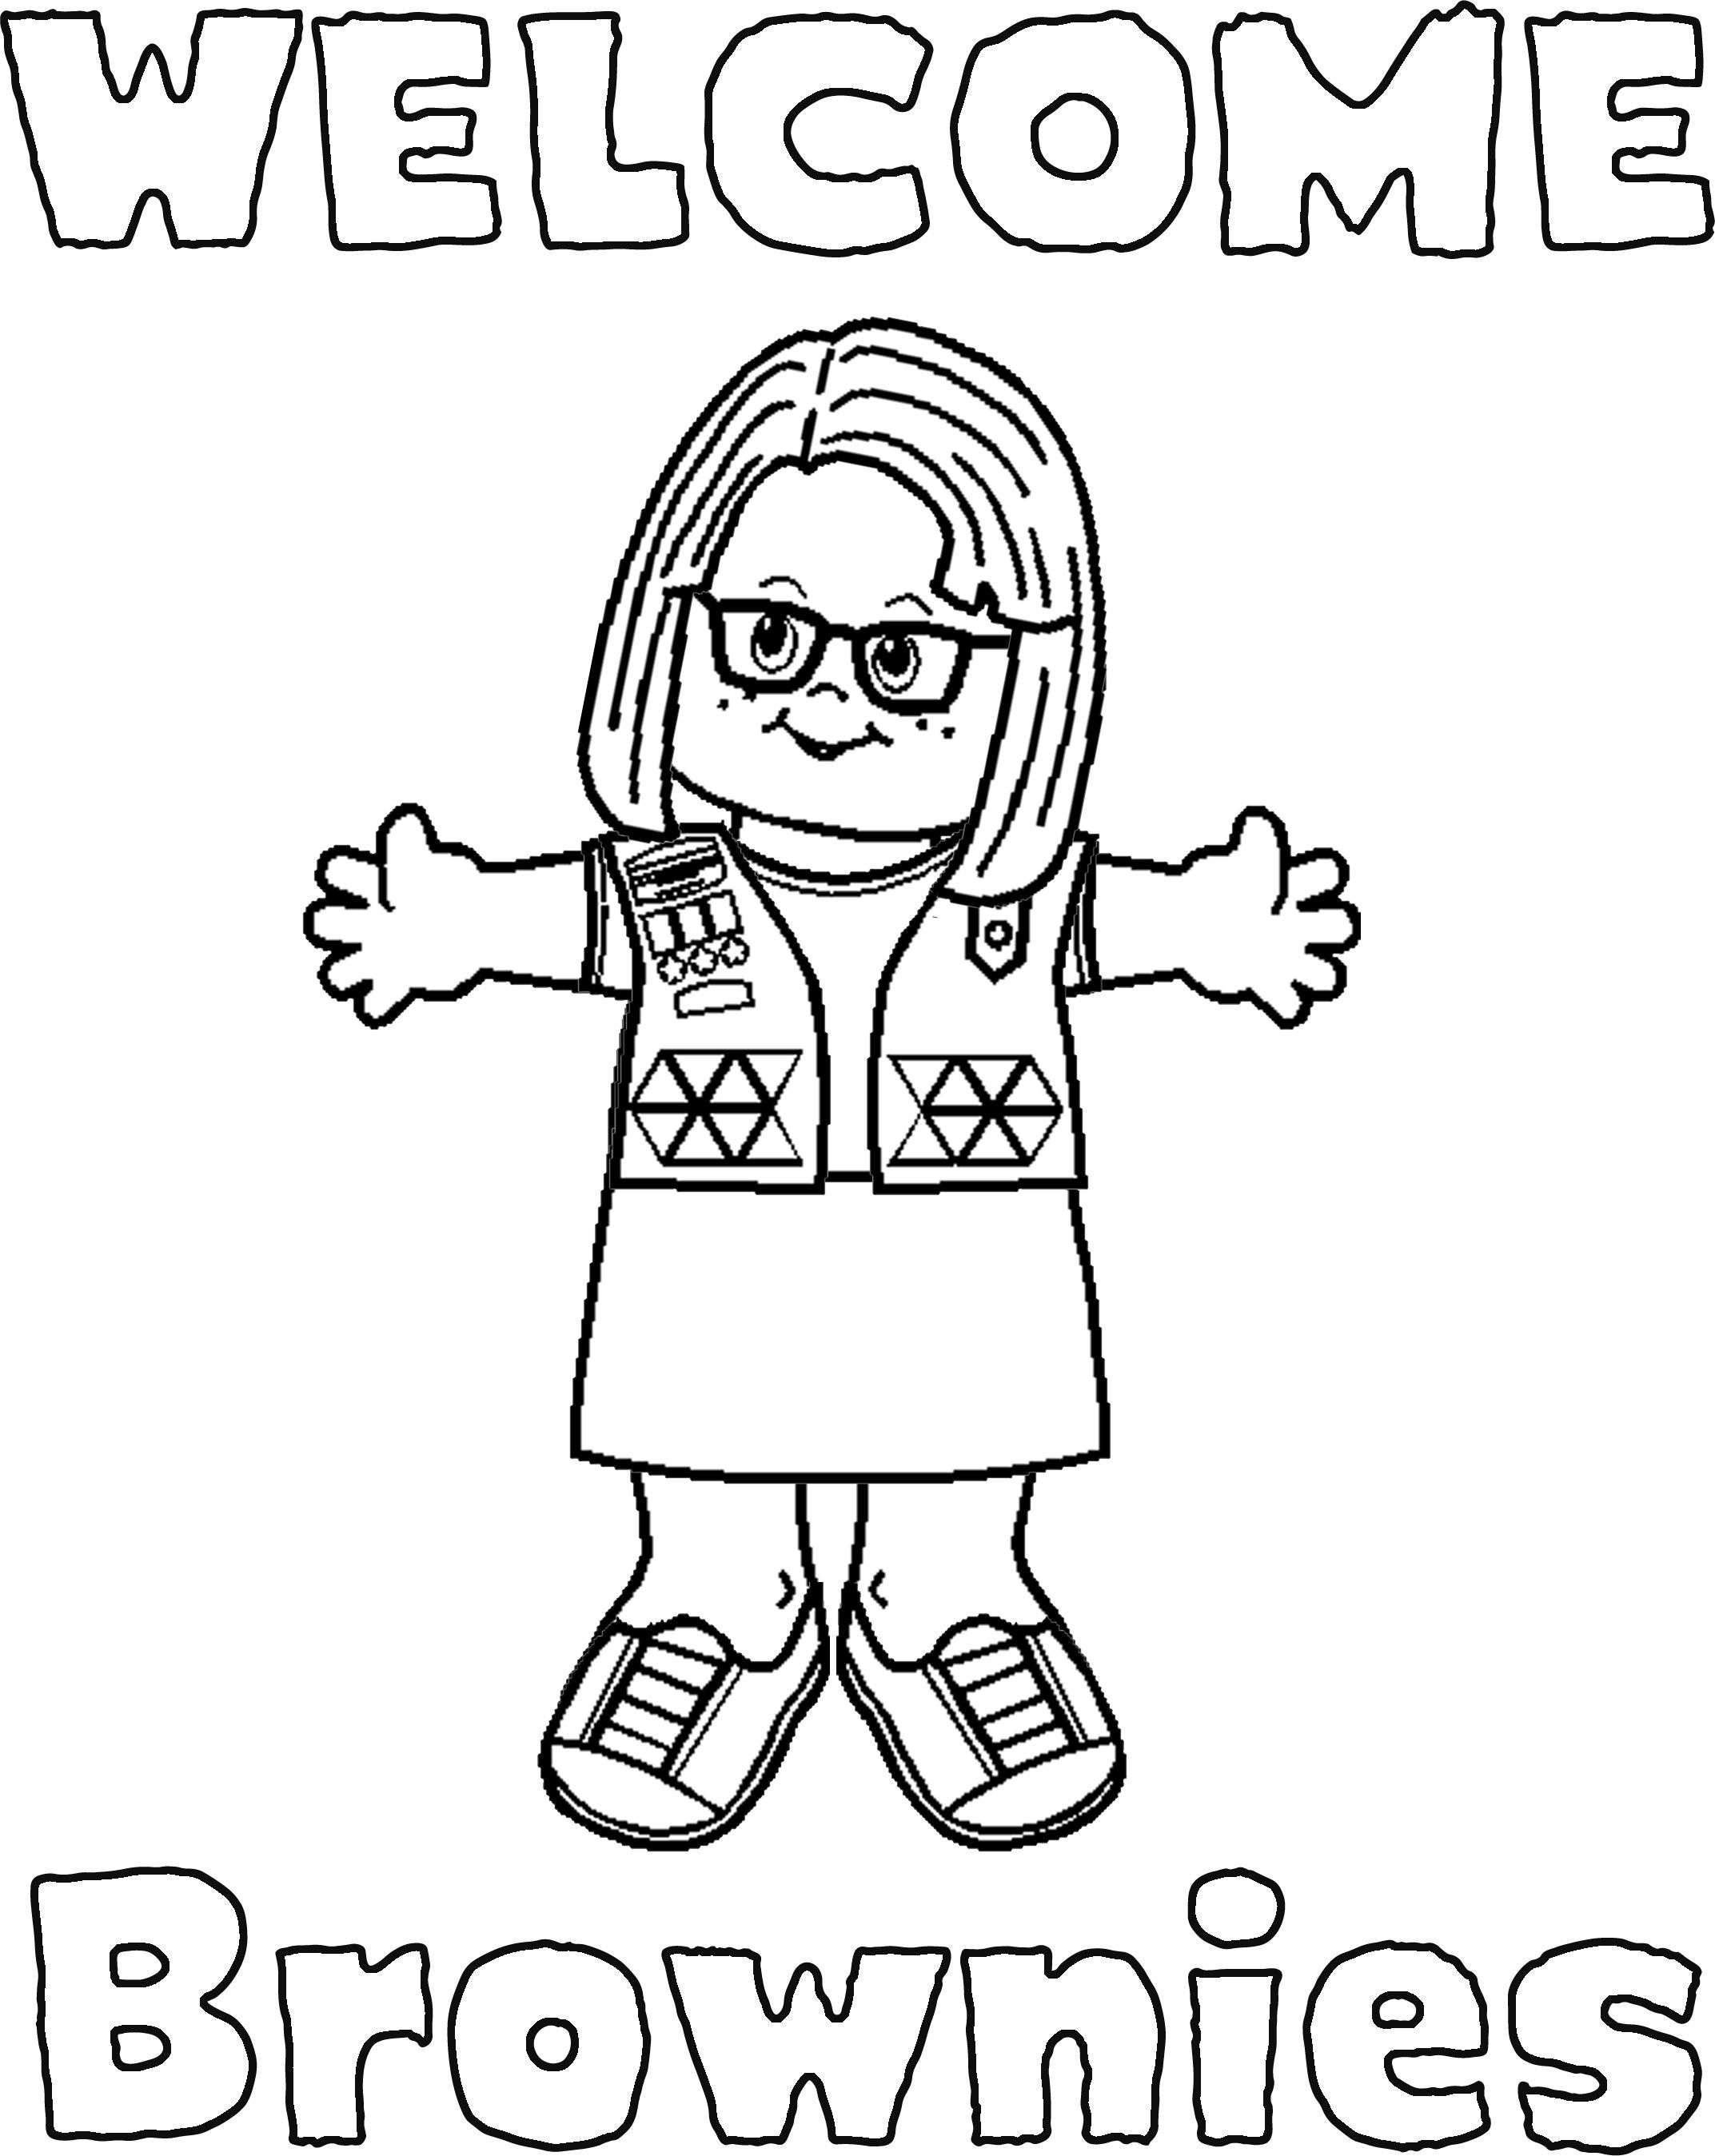 Girl Scout Brownie Coloring Pages  to Print 10q - To print for your project